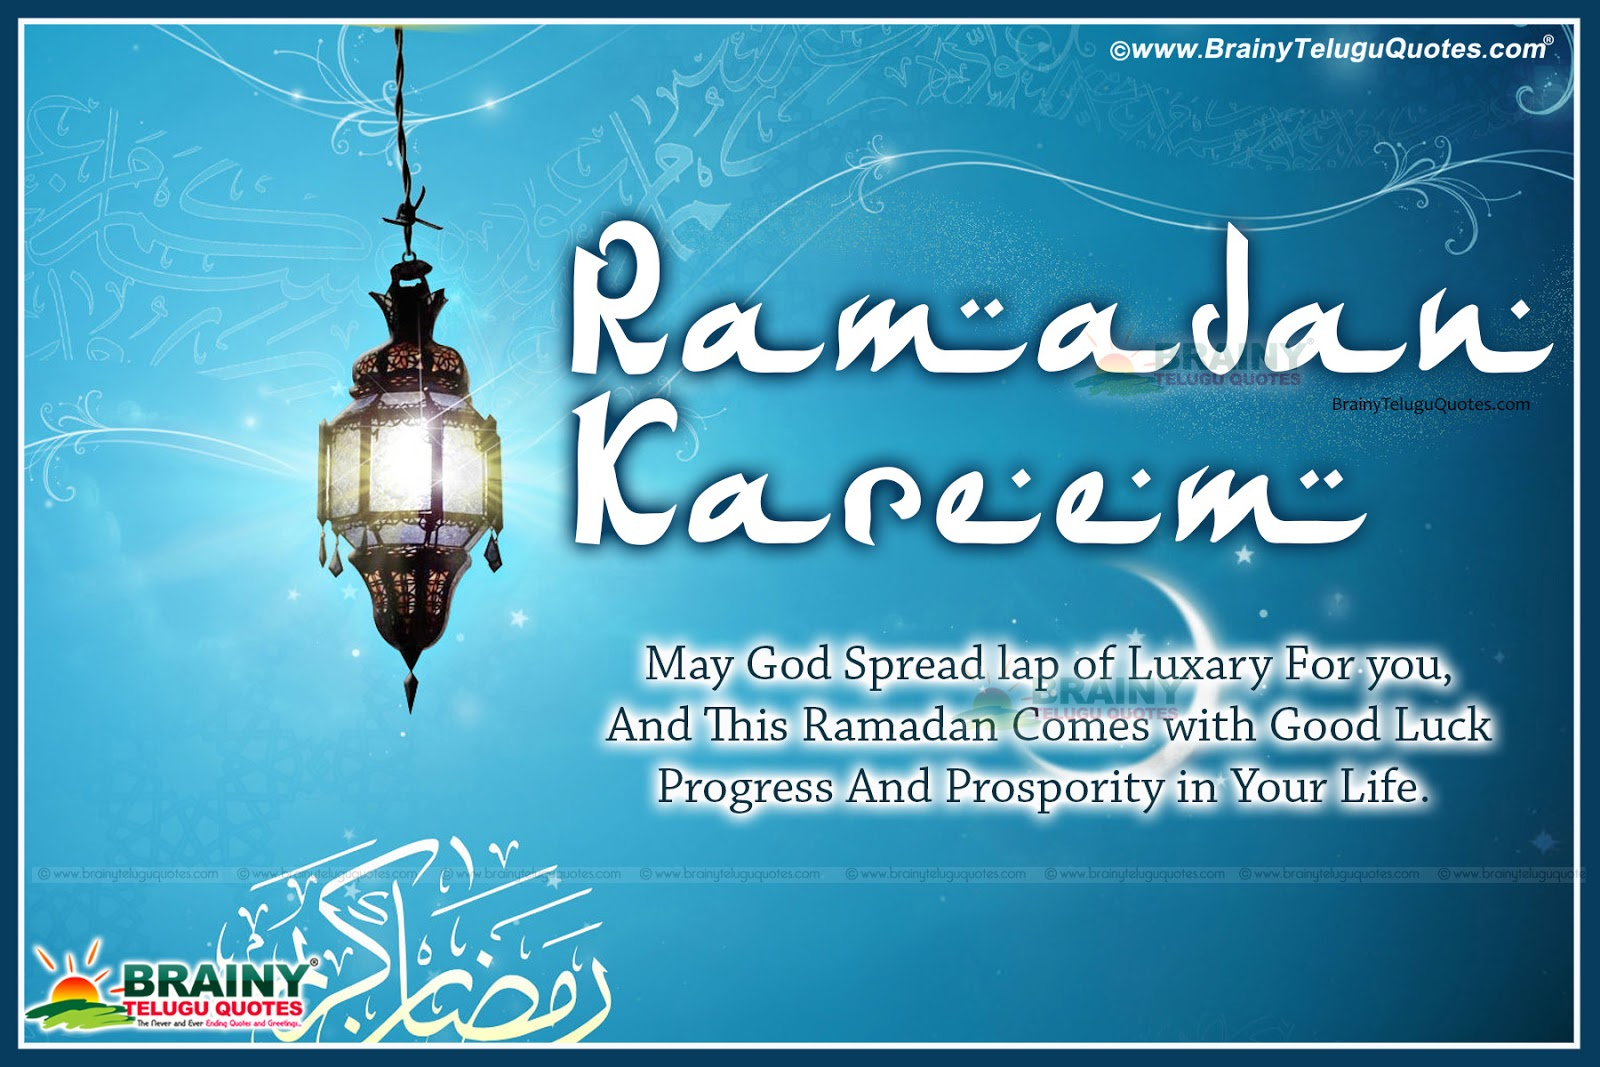 Blessings Of Allah Quotes For Ramadan In English